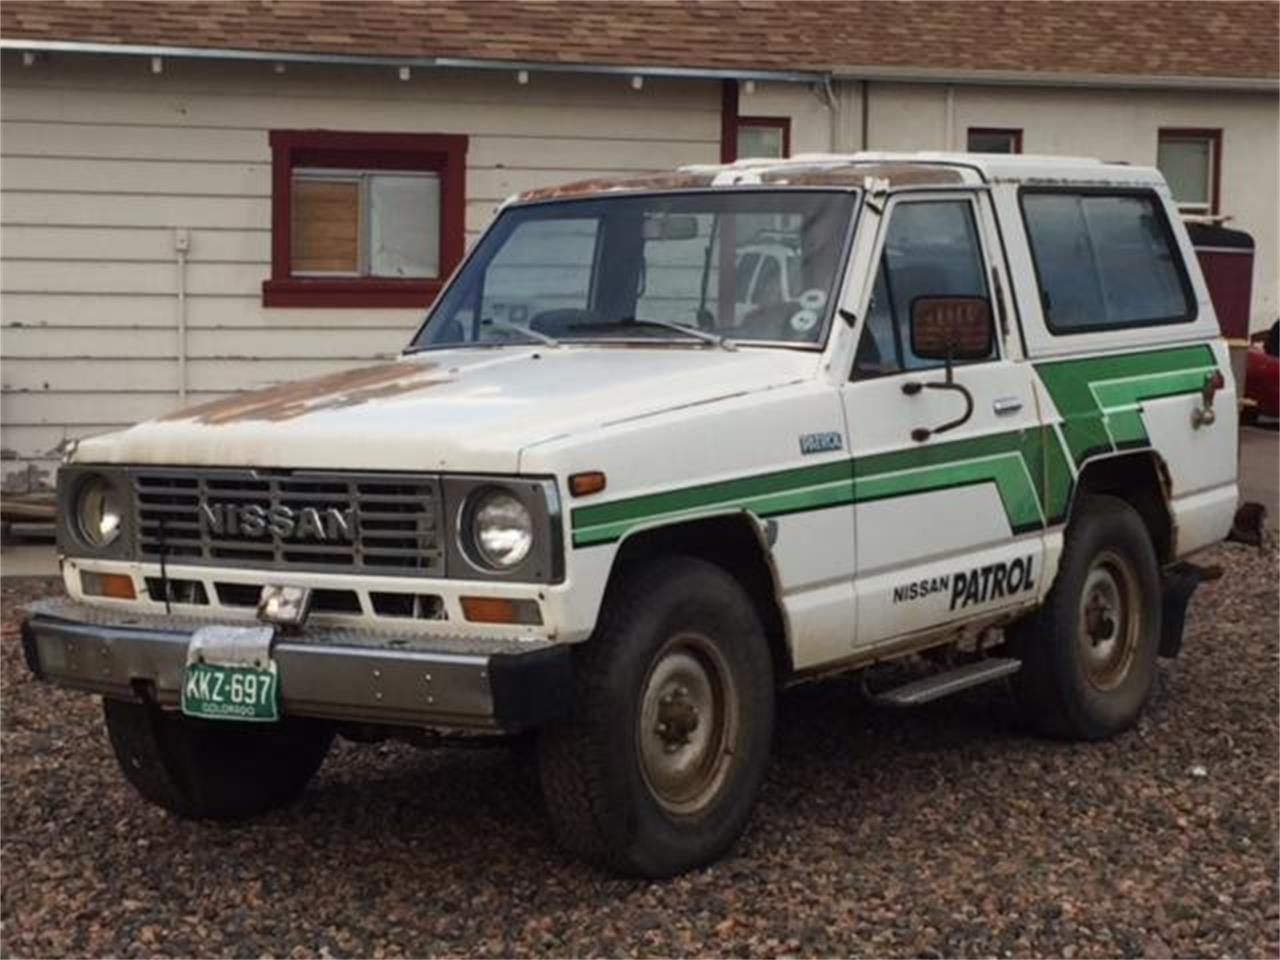 Large Picture of '83 Patrol located in West Denver Colorado - $13,900.00 Offered by a Private Seller - NNF8